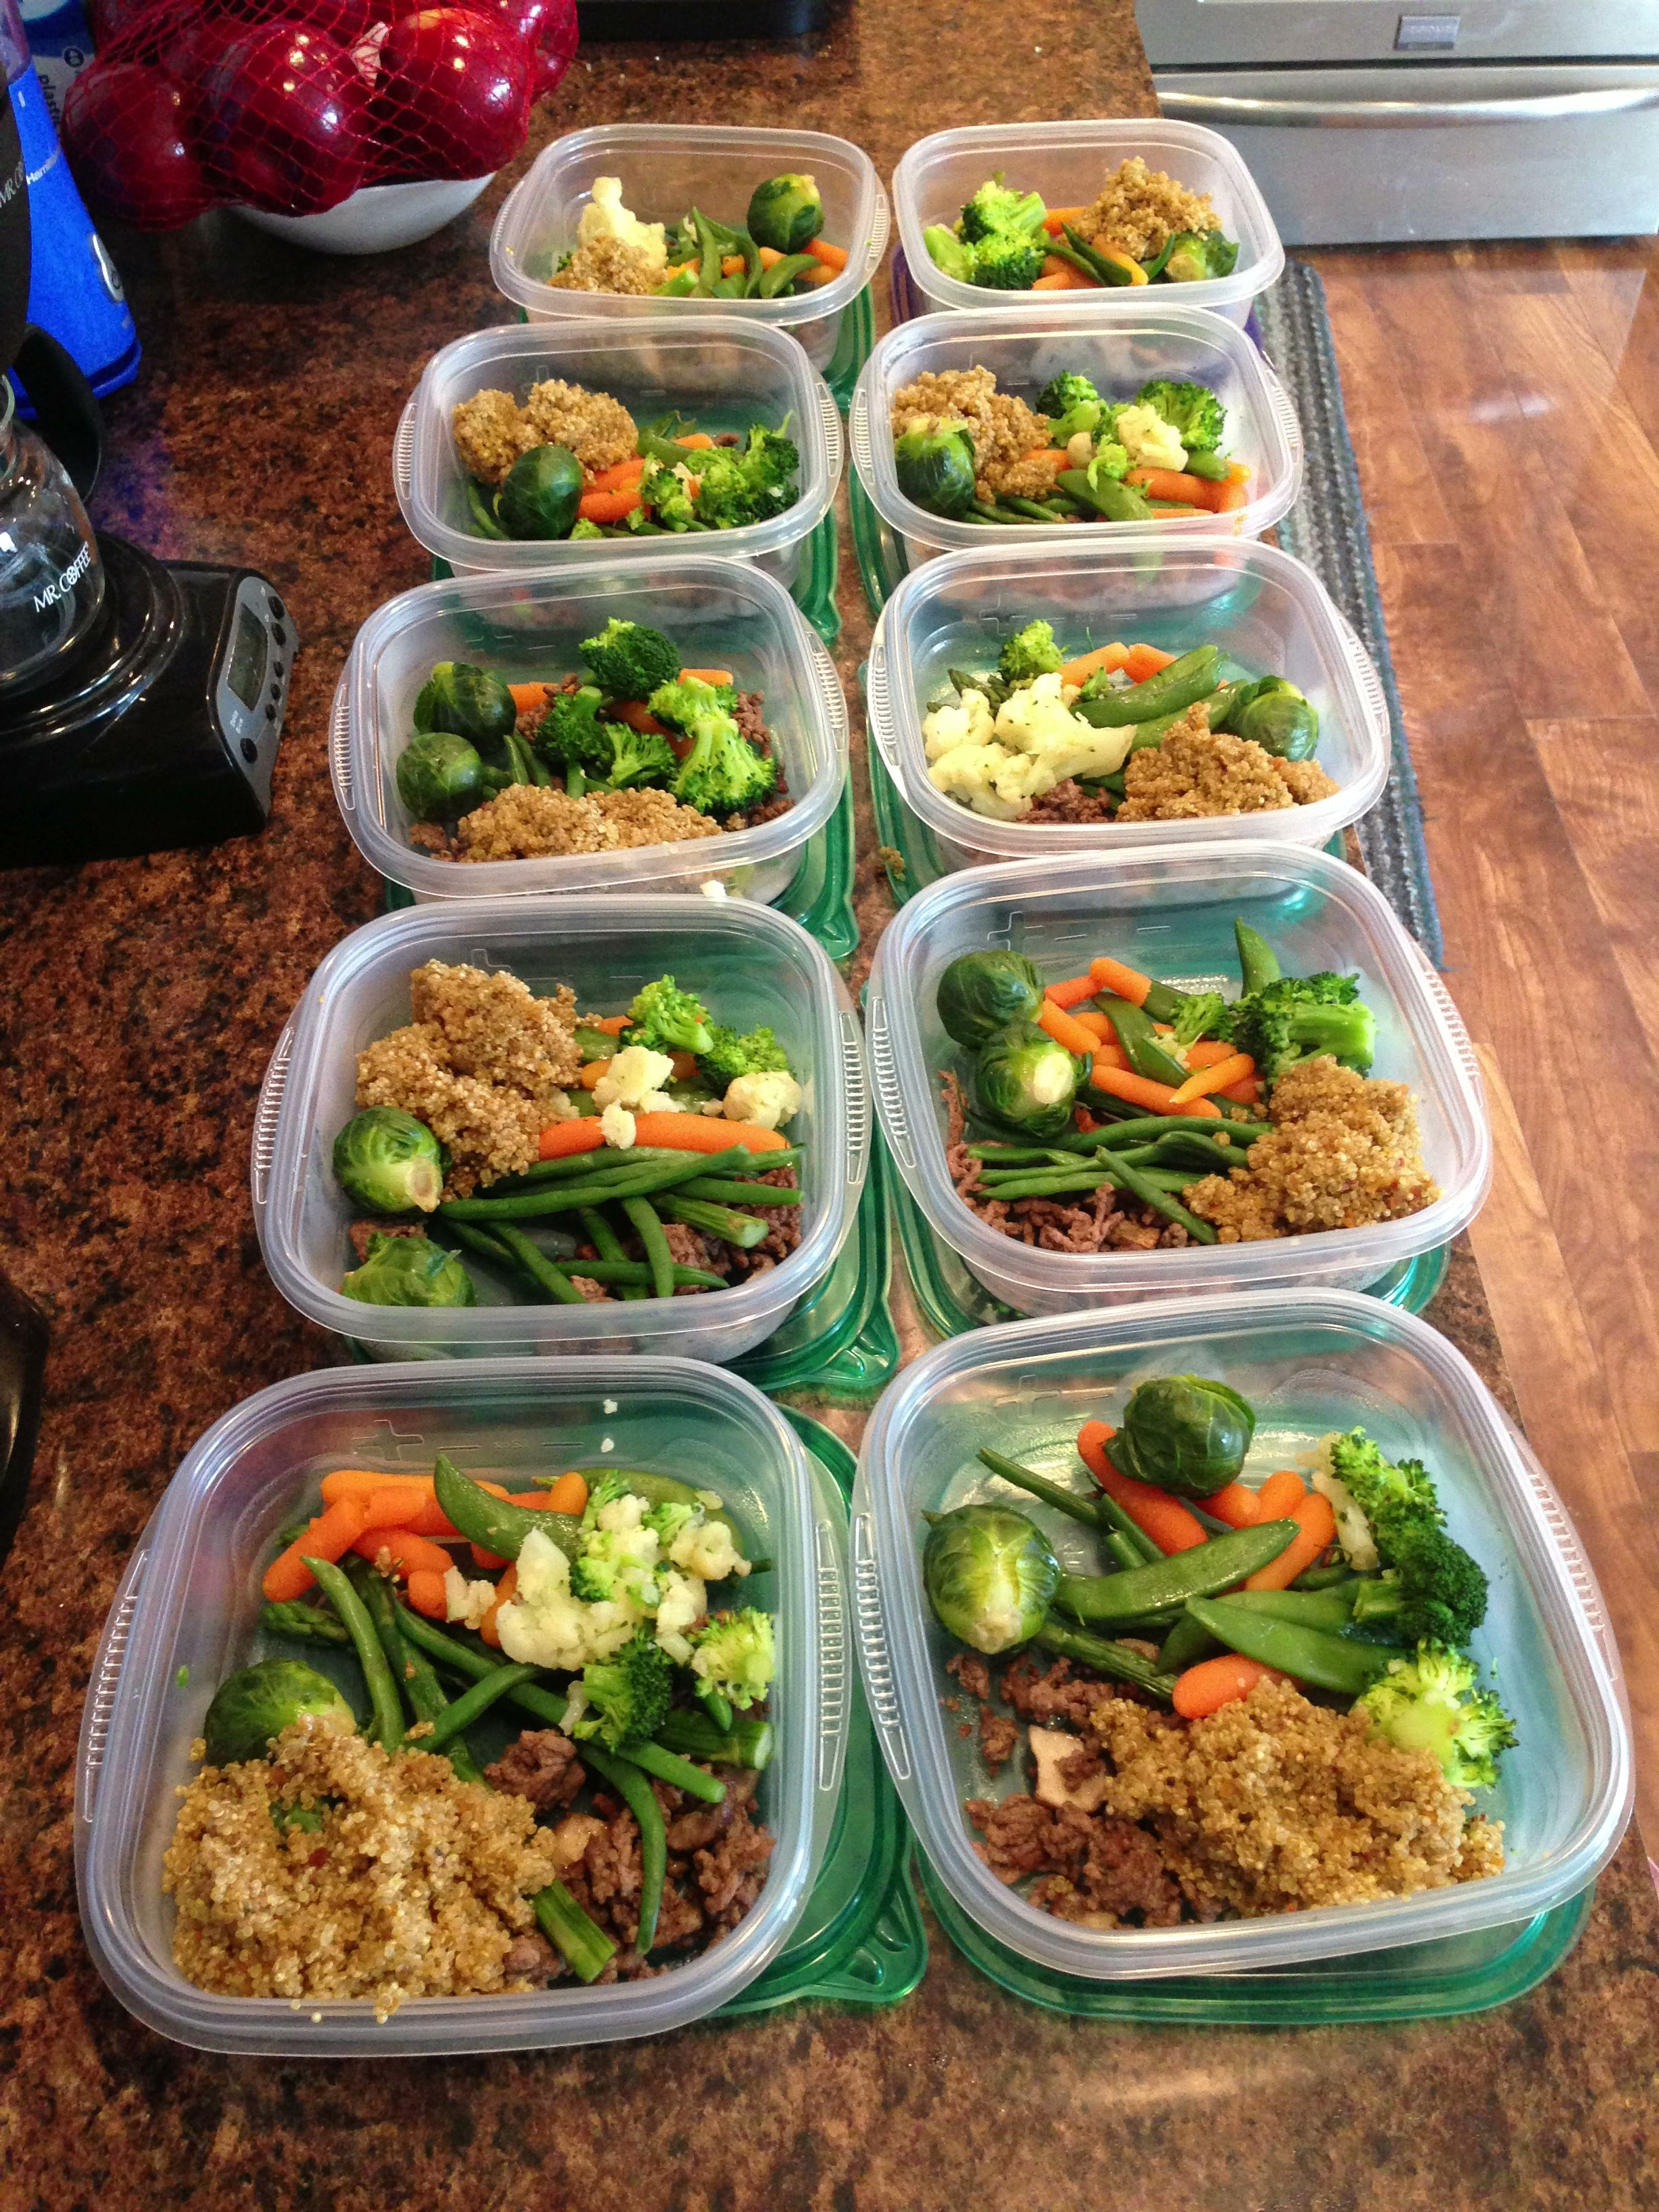 Clean Eating Meal Prep Gluten Free Quinoa Steamed Veggies Ground Beef 93 7 Cooked With Mushrooms Meal Prep Clean Eating Healthy Snacks Clean Eating Recipes